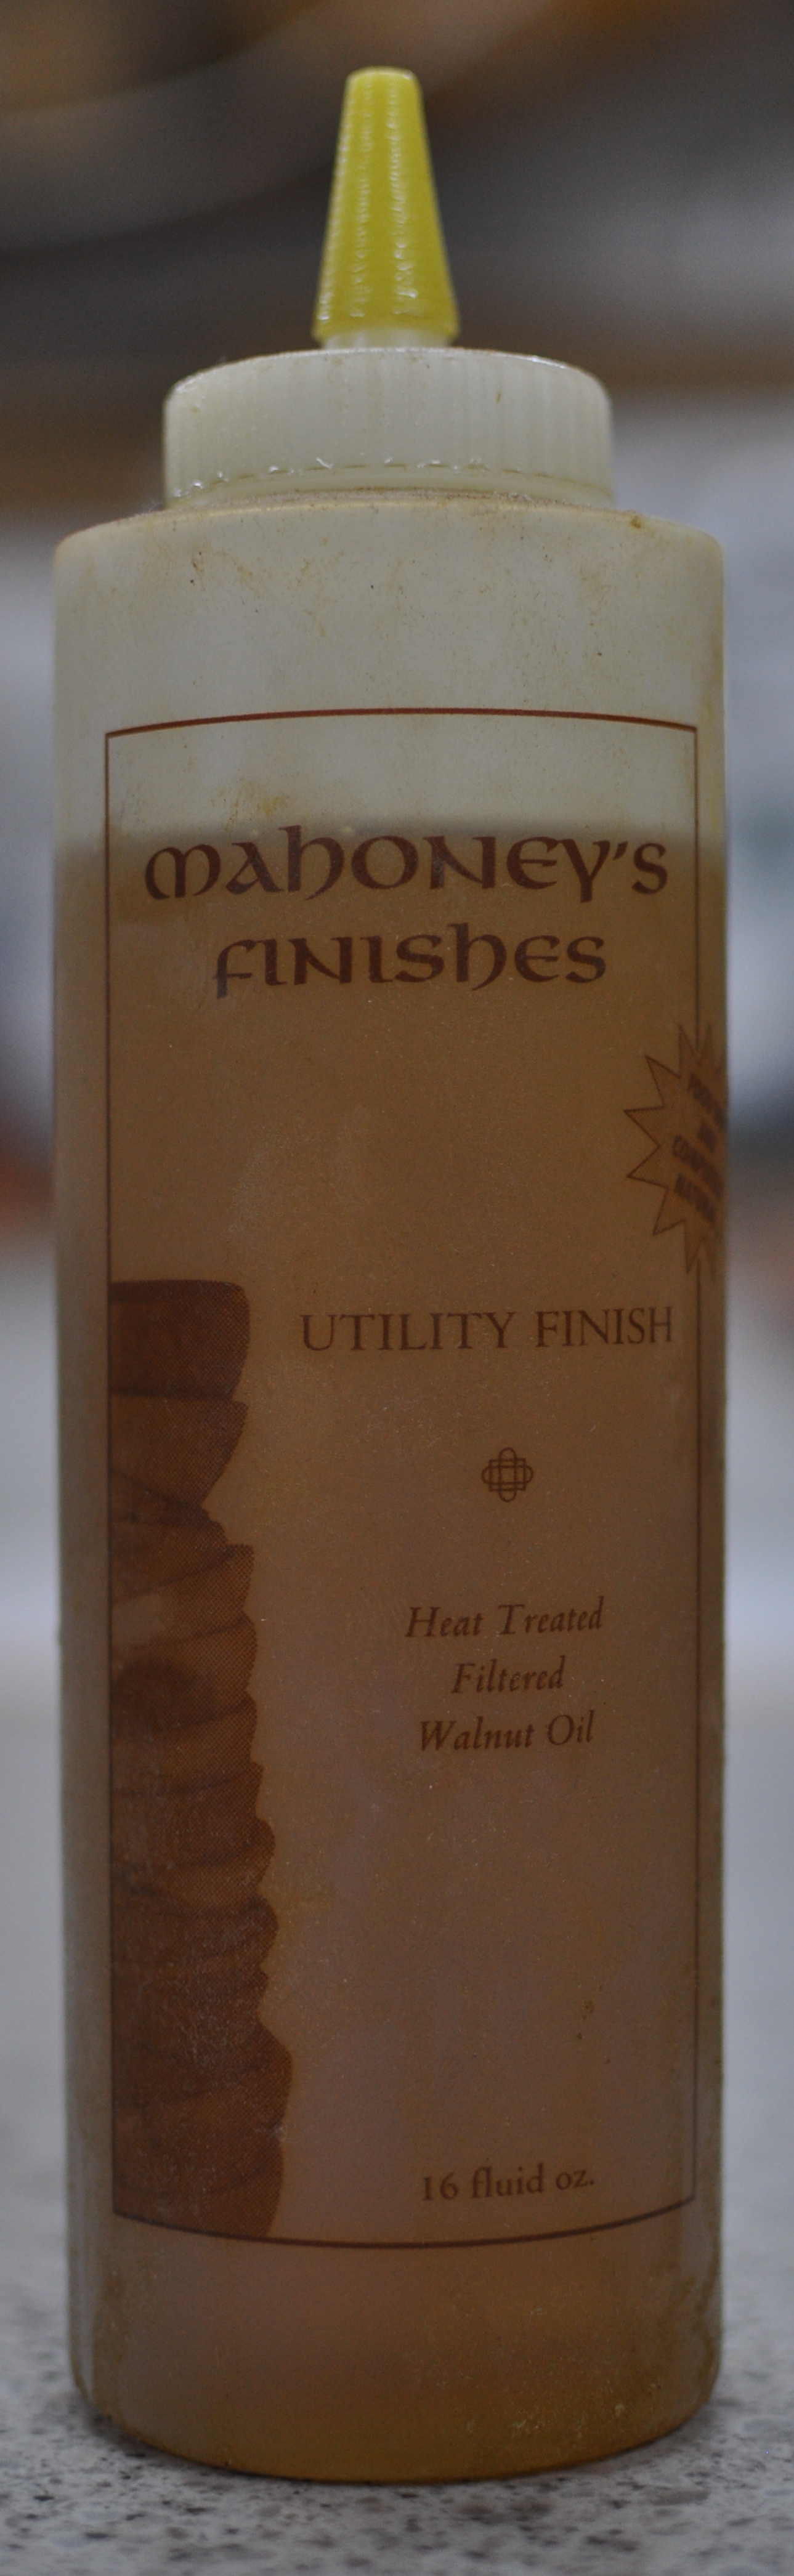 Walnut oil is an excellent utility finish